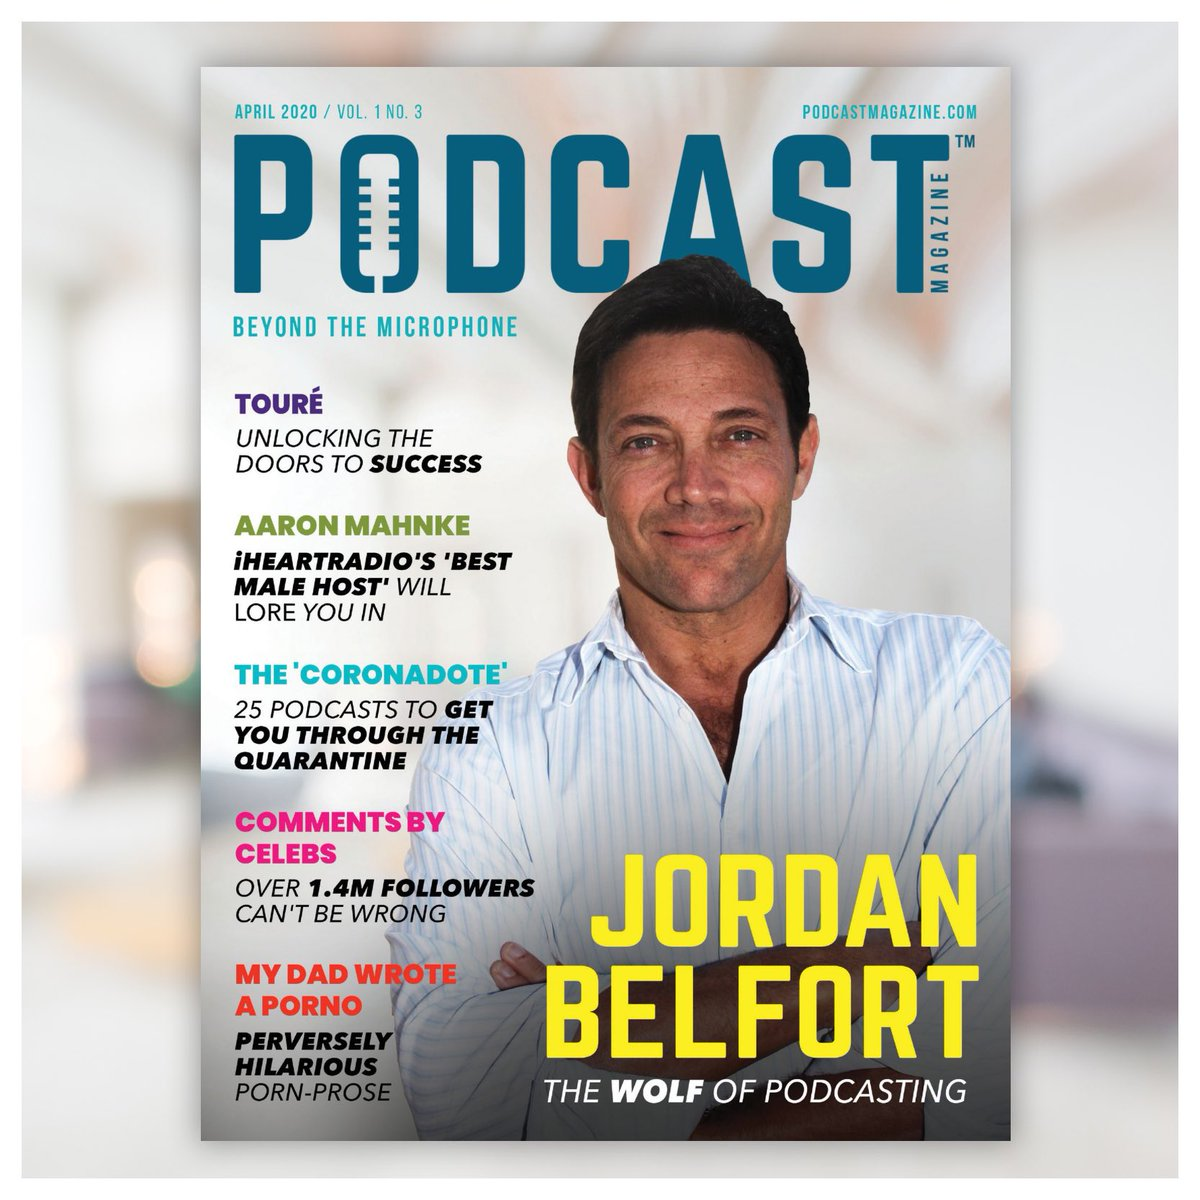 @thepodcastmag April Issue hits your app SOON — featuring @wolfofwallst @toureshow @amahnke @commentsbycelebs @mydadwrotea and more more MORE .... also, I made it into this one too  swipe for a preview  • #commentsbycelebs #toure #wolfofwallst #jordanbelfort #aaronmahnkepic.twitter.com/JQcND5k6SP